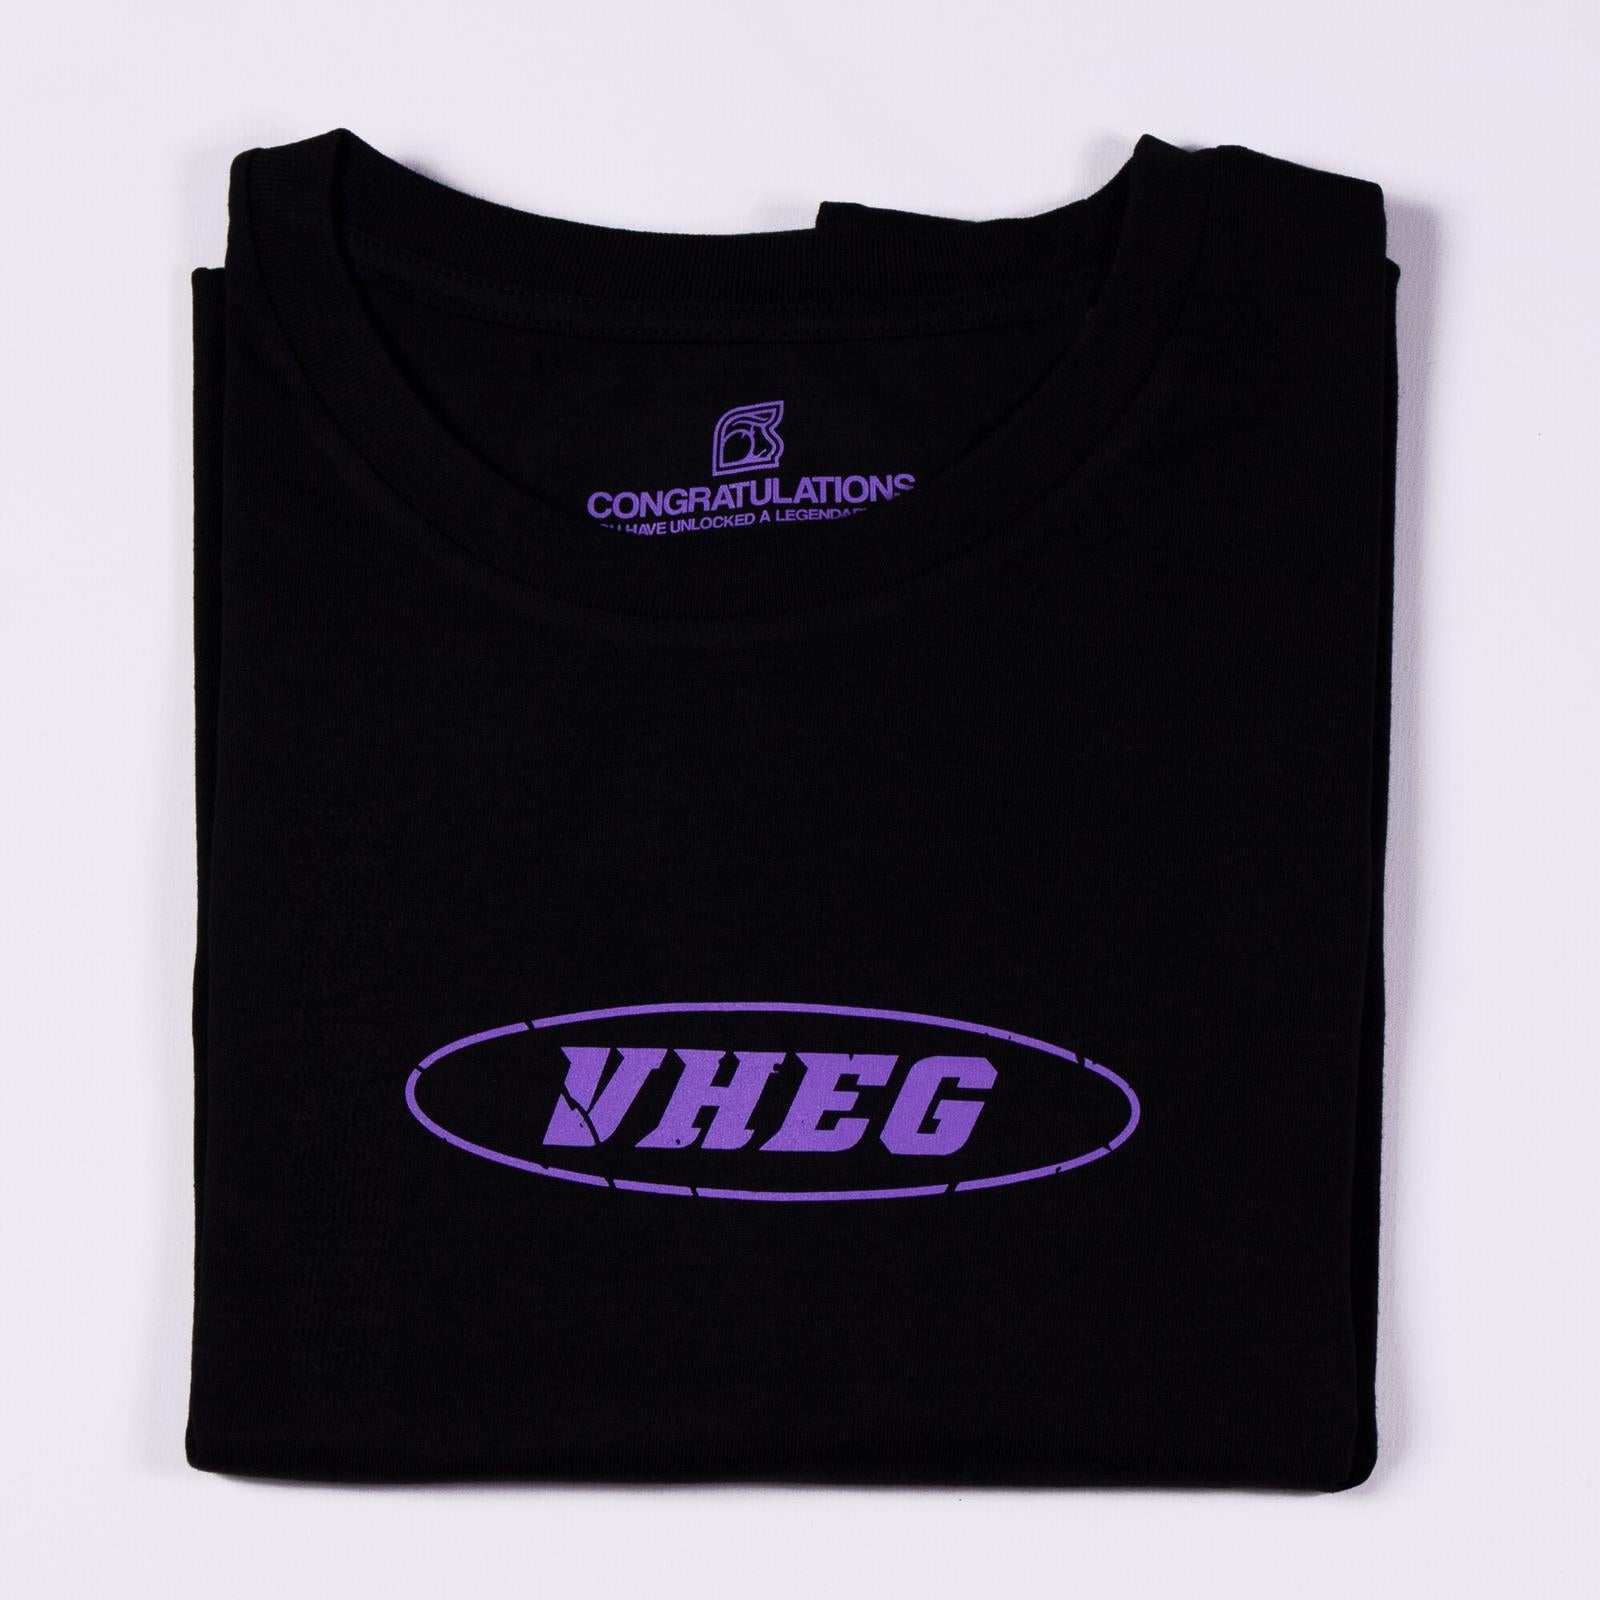 VHEG 'Gun Fingers' T-Shirt (Dark)